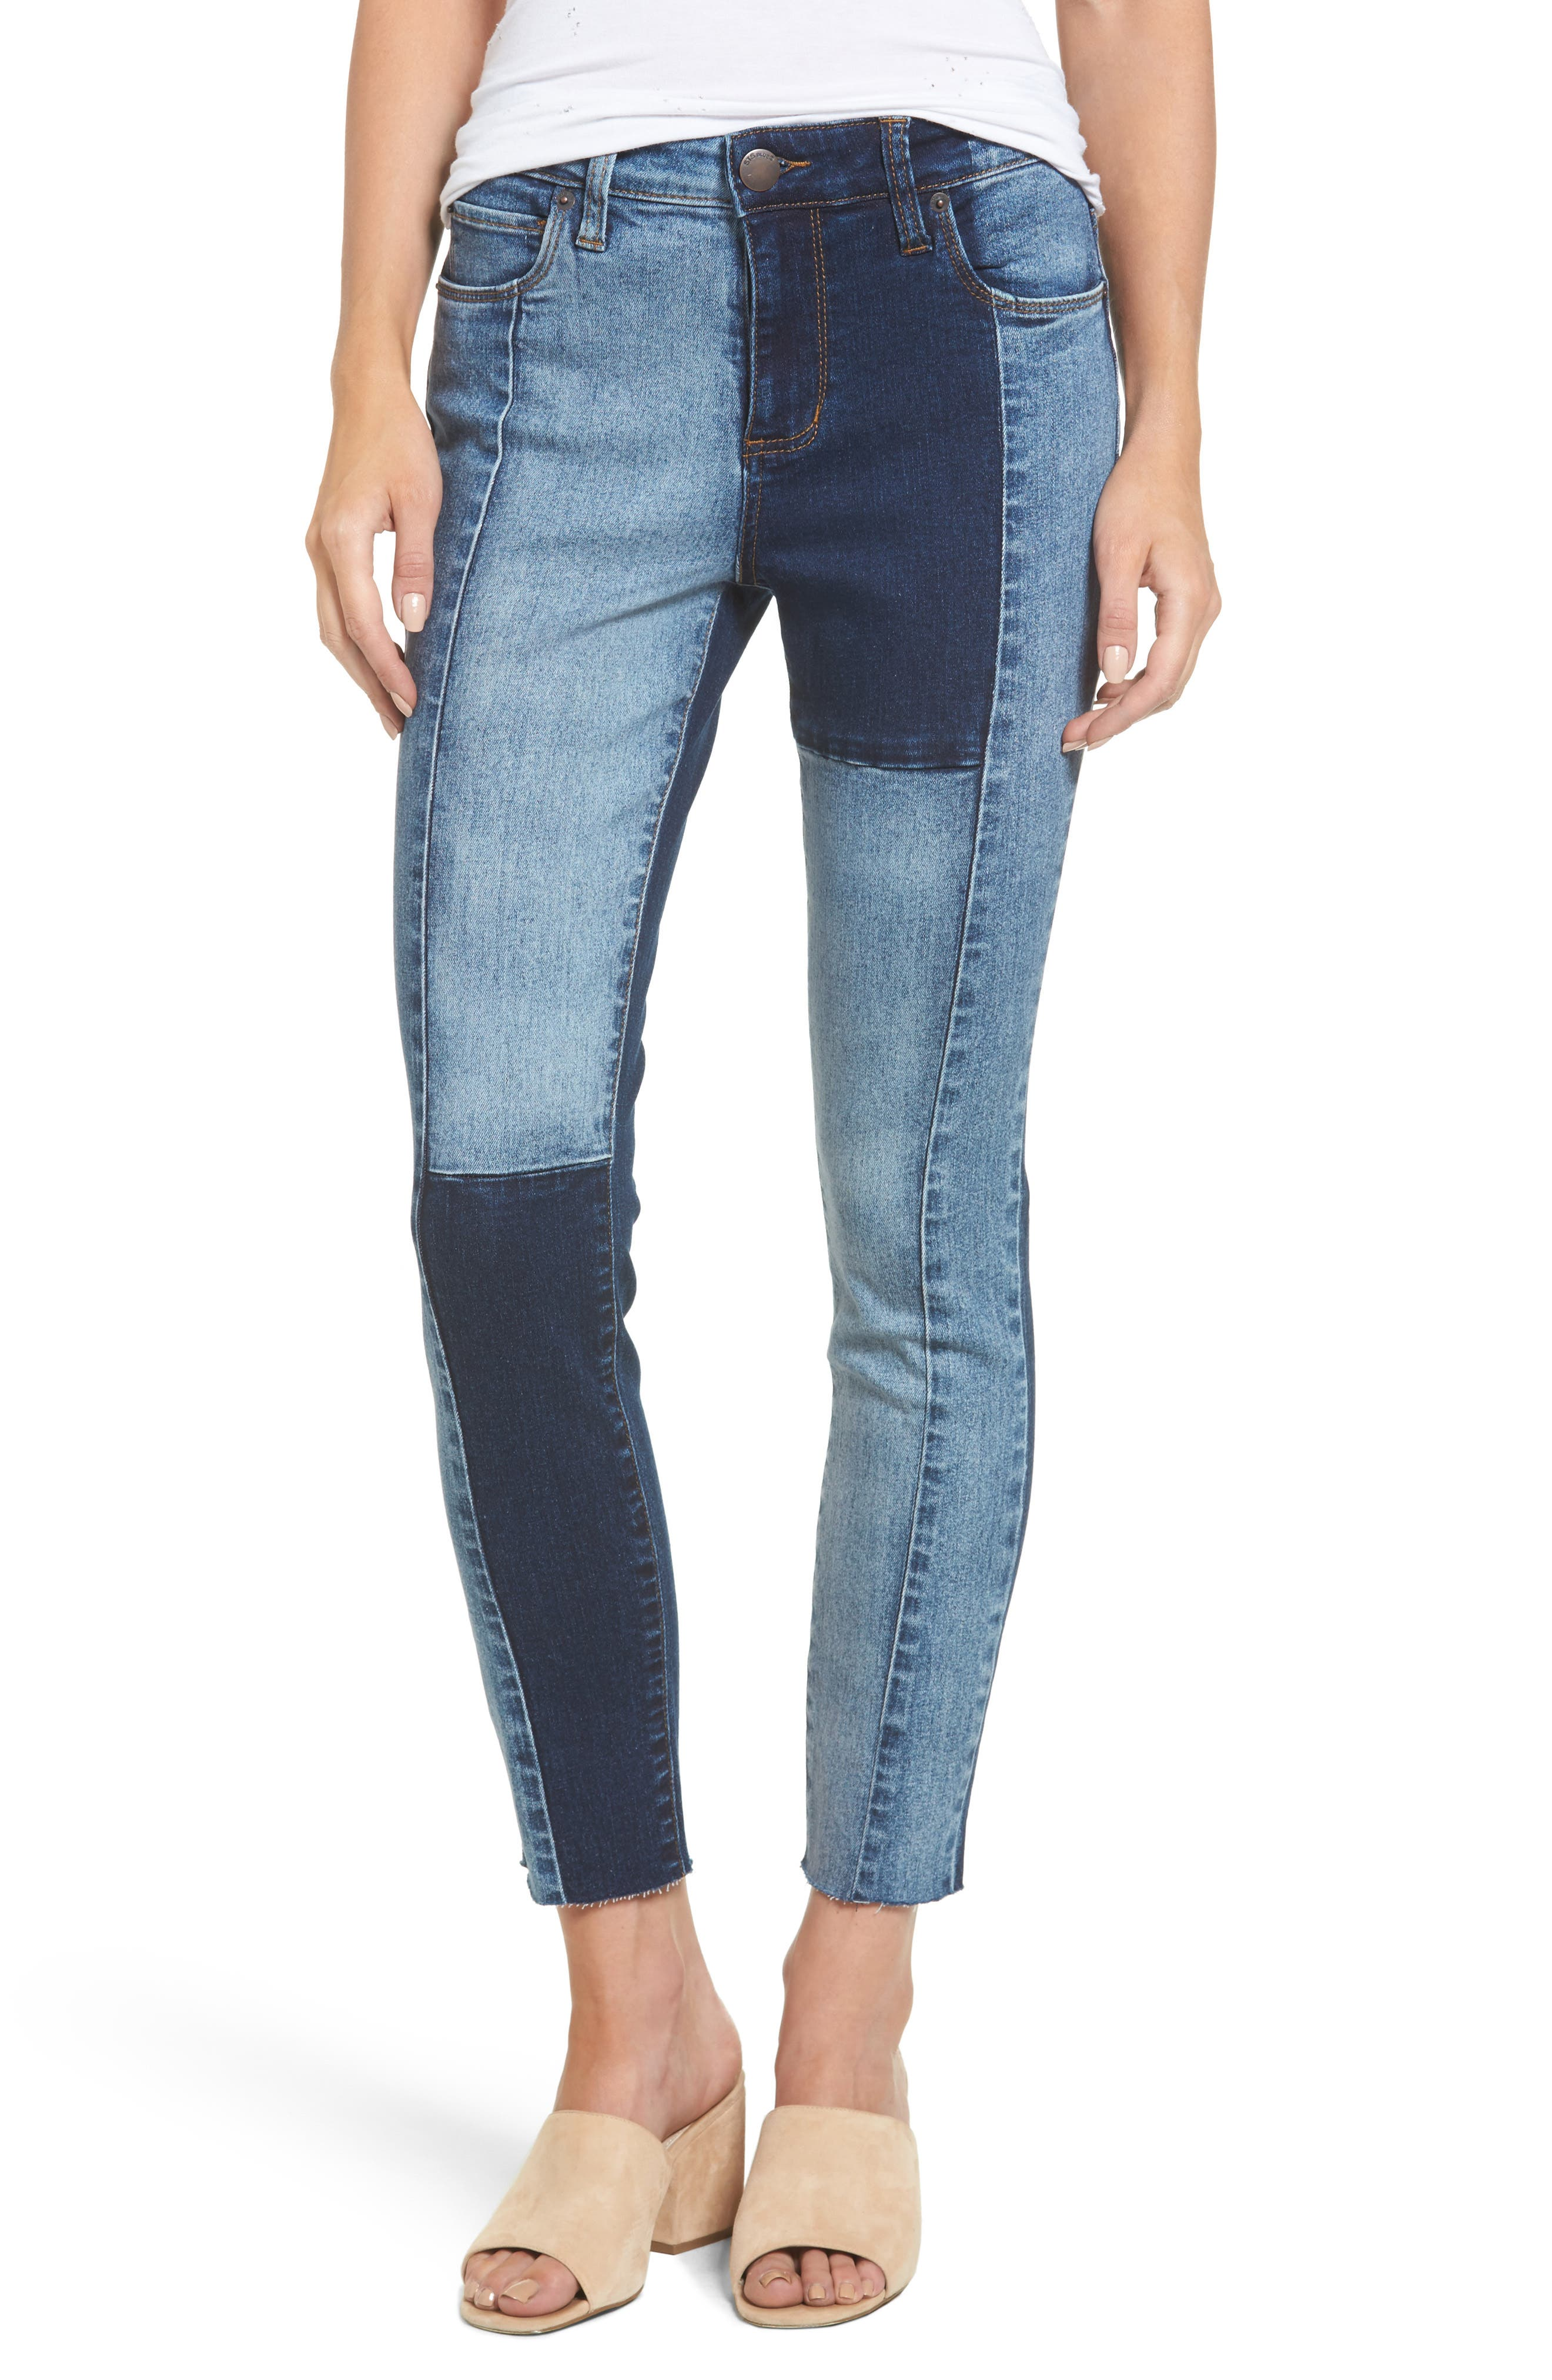 Alternate Image 1 Selected - STS Blue Piper Colorblock Ankle Skinny Jeans (Pacific Coast)